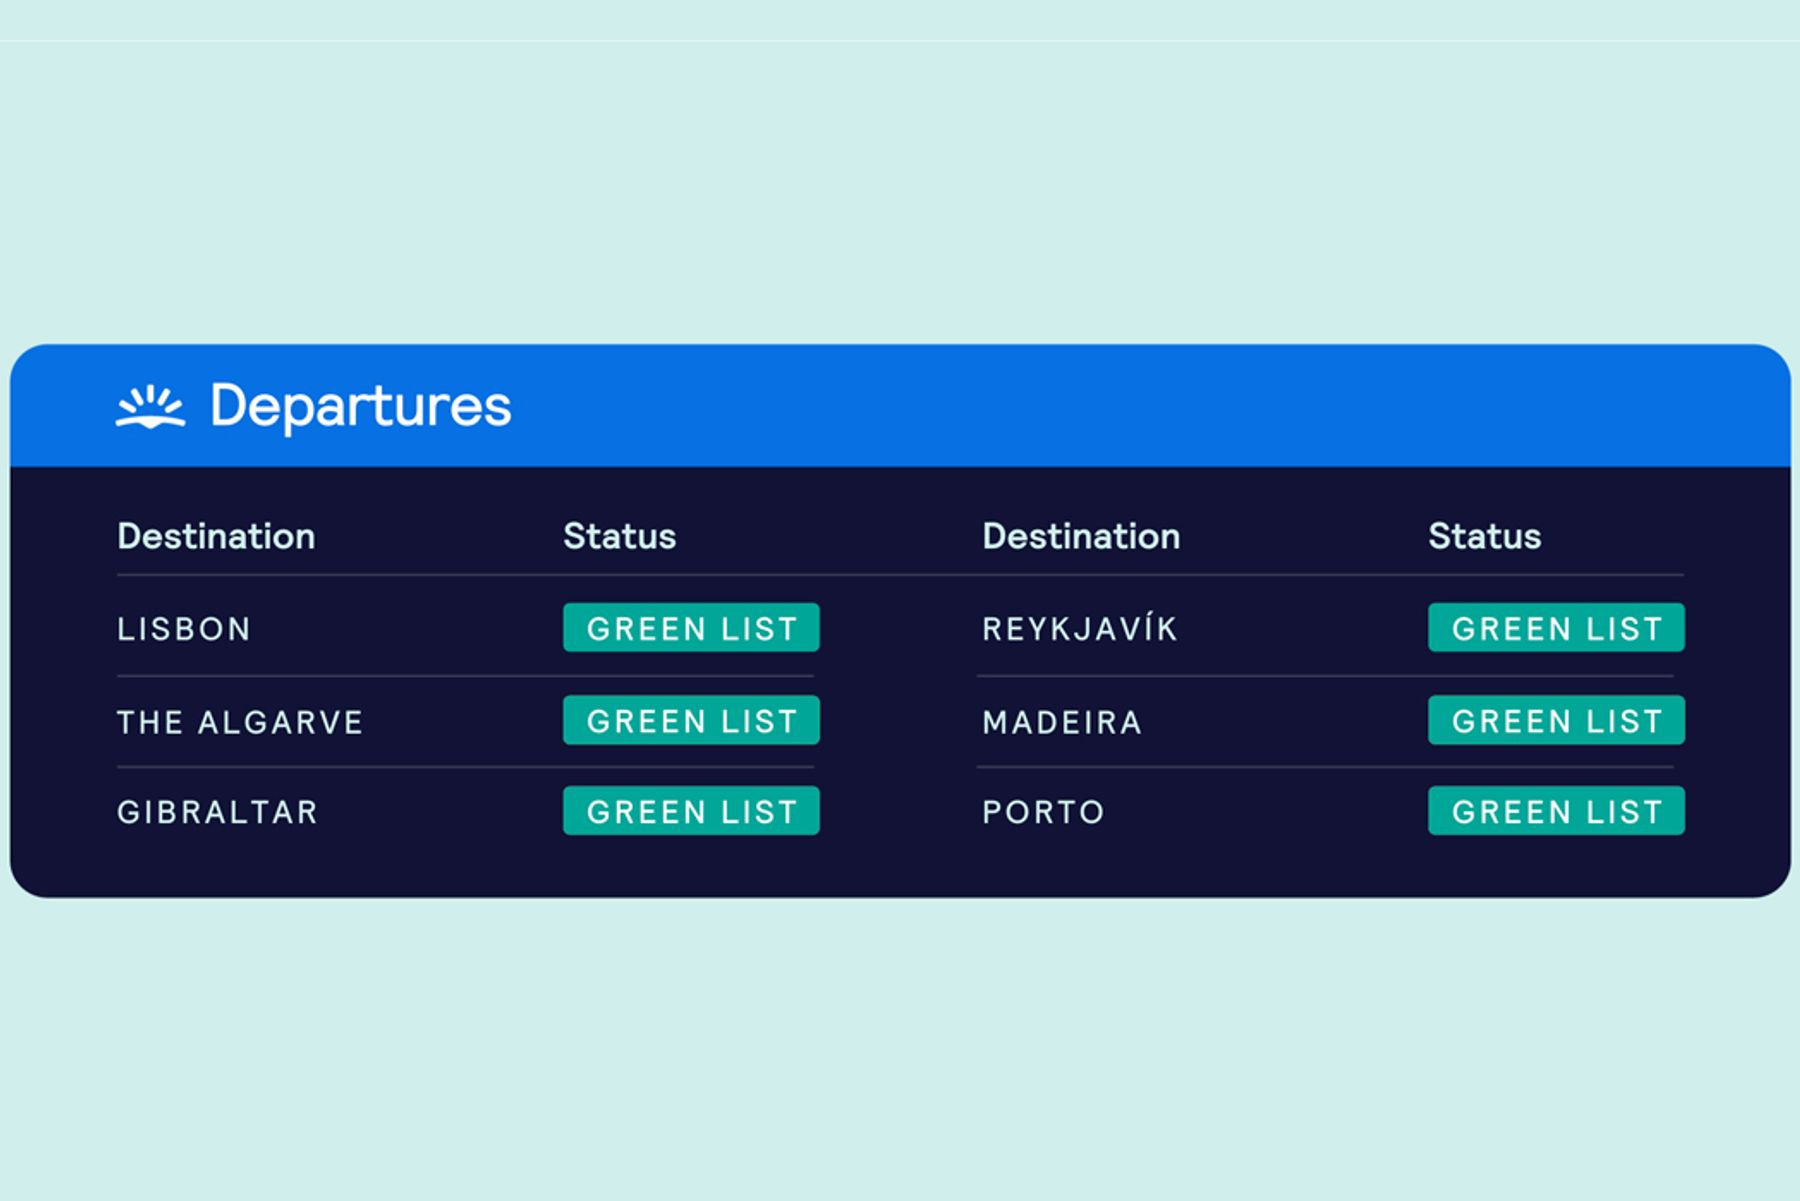 Illustration showing a departures board with destination on the UK travel green list. They are Lisbon, the Algarve, Gibraltar, Reykjavik Madeira and Porto